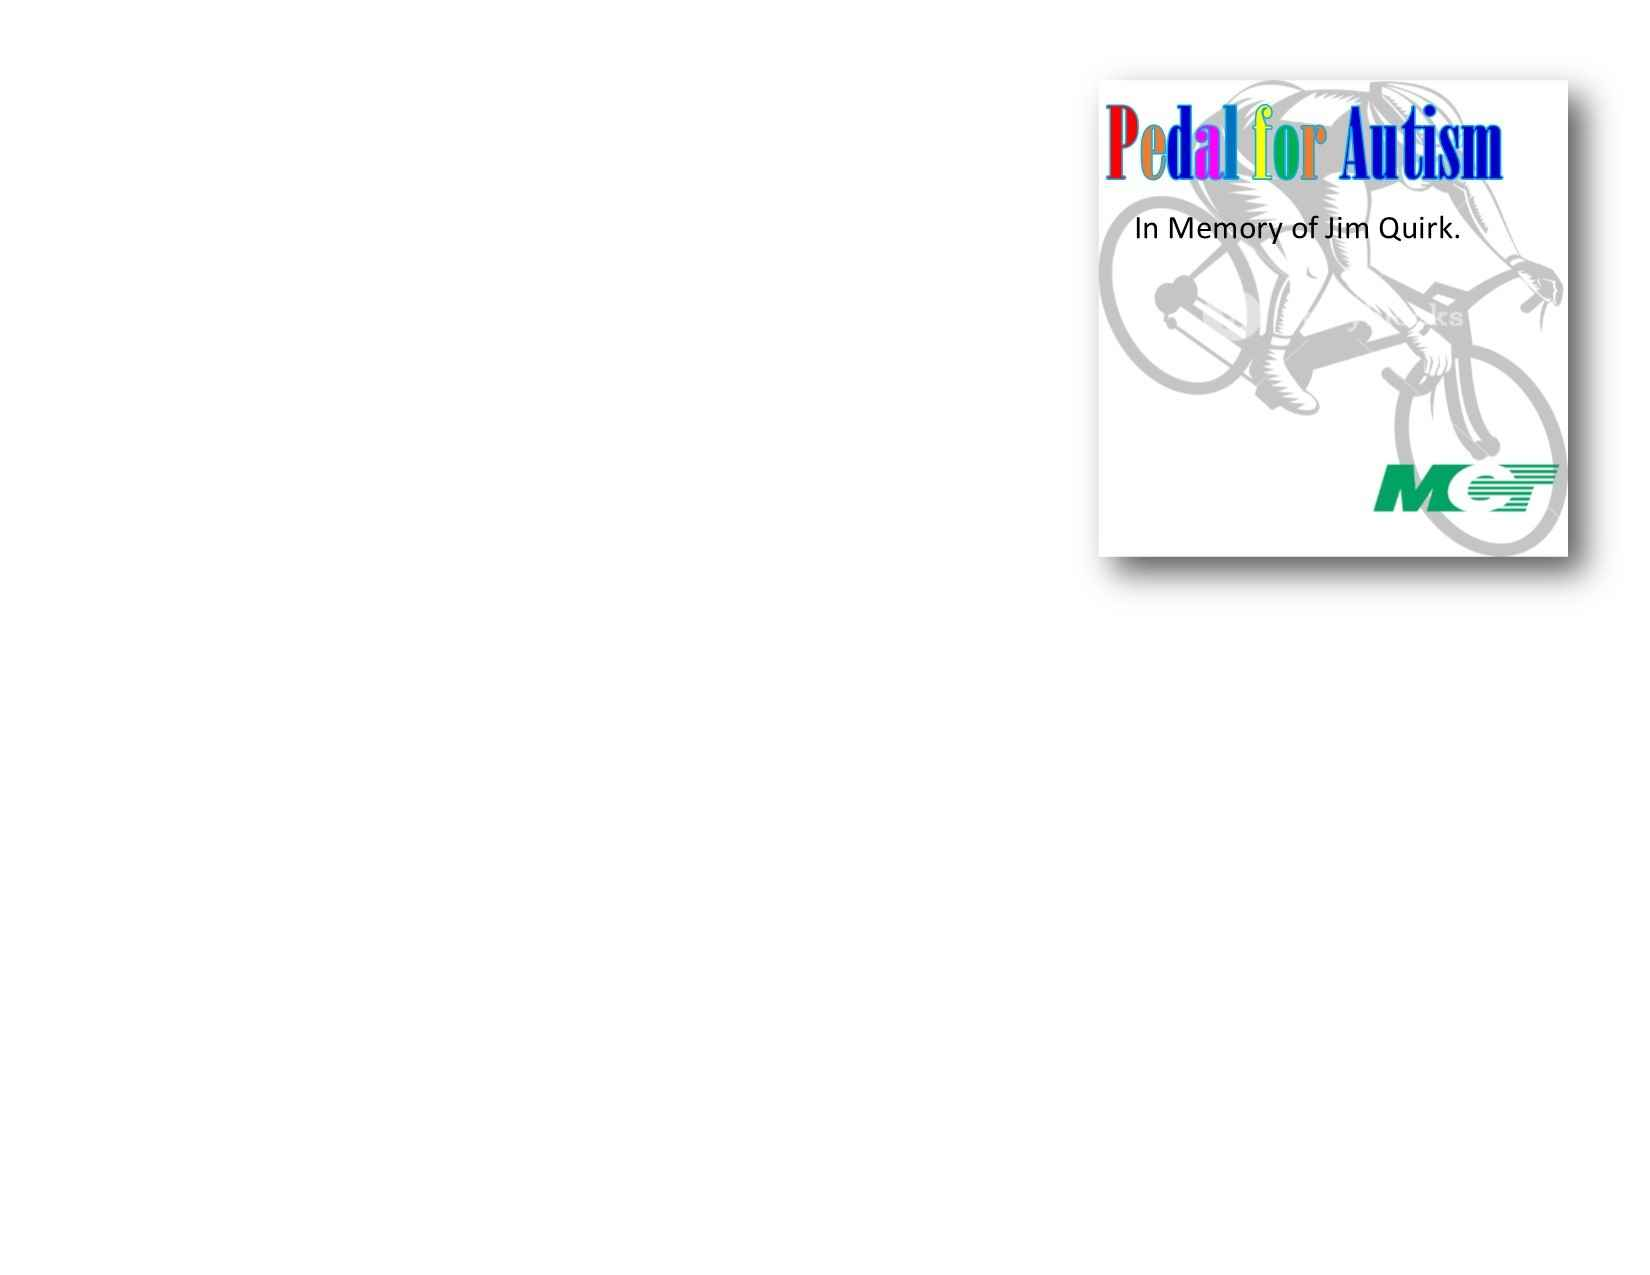 Tickets & T-Shirts-2021 Pedal for Autism image